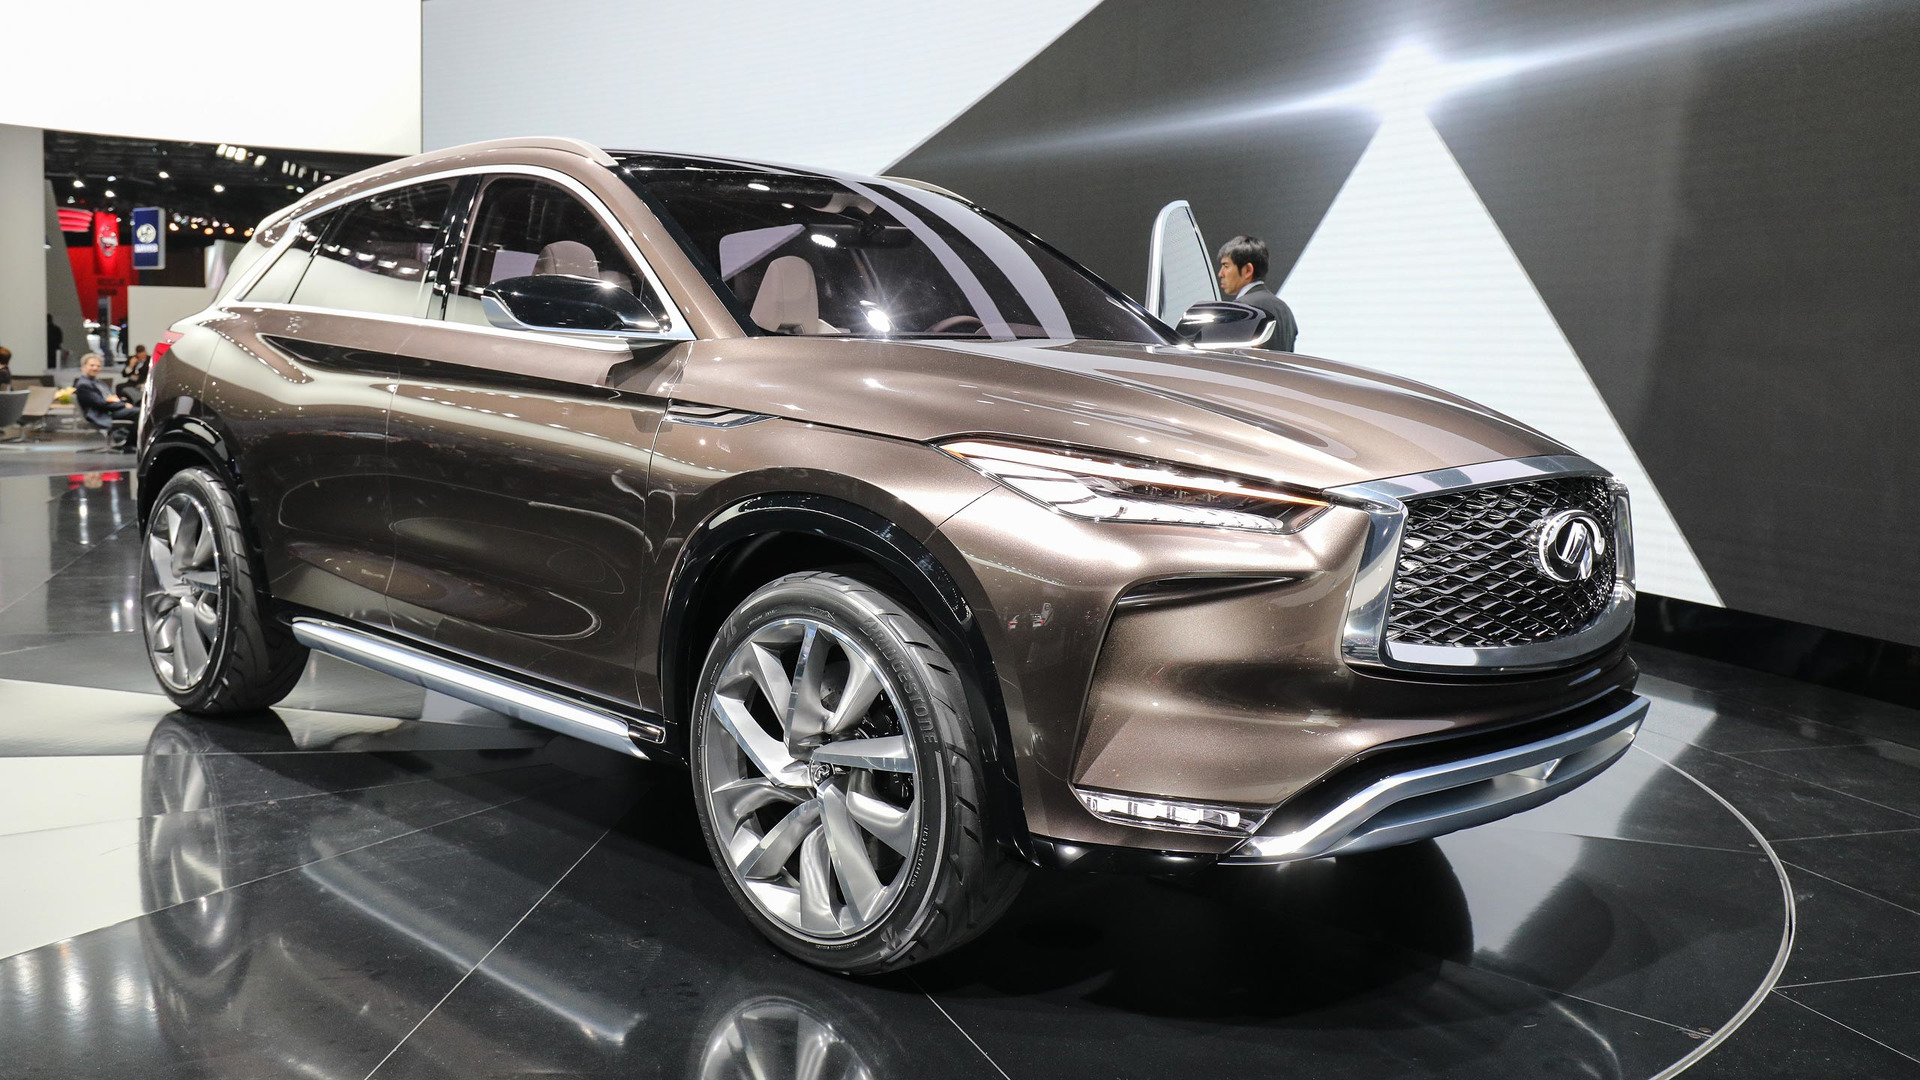 infiniti qx50 concept is the brand 39 s preview of future cuv. Black Bedroom Furniture Sets. Home Design Ideas